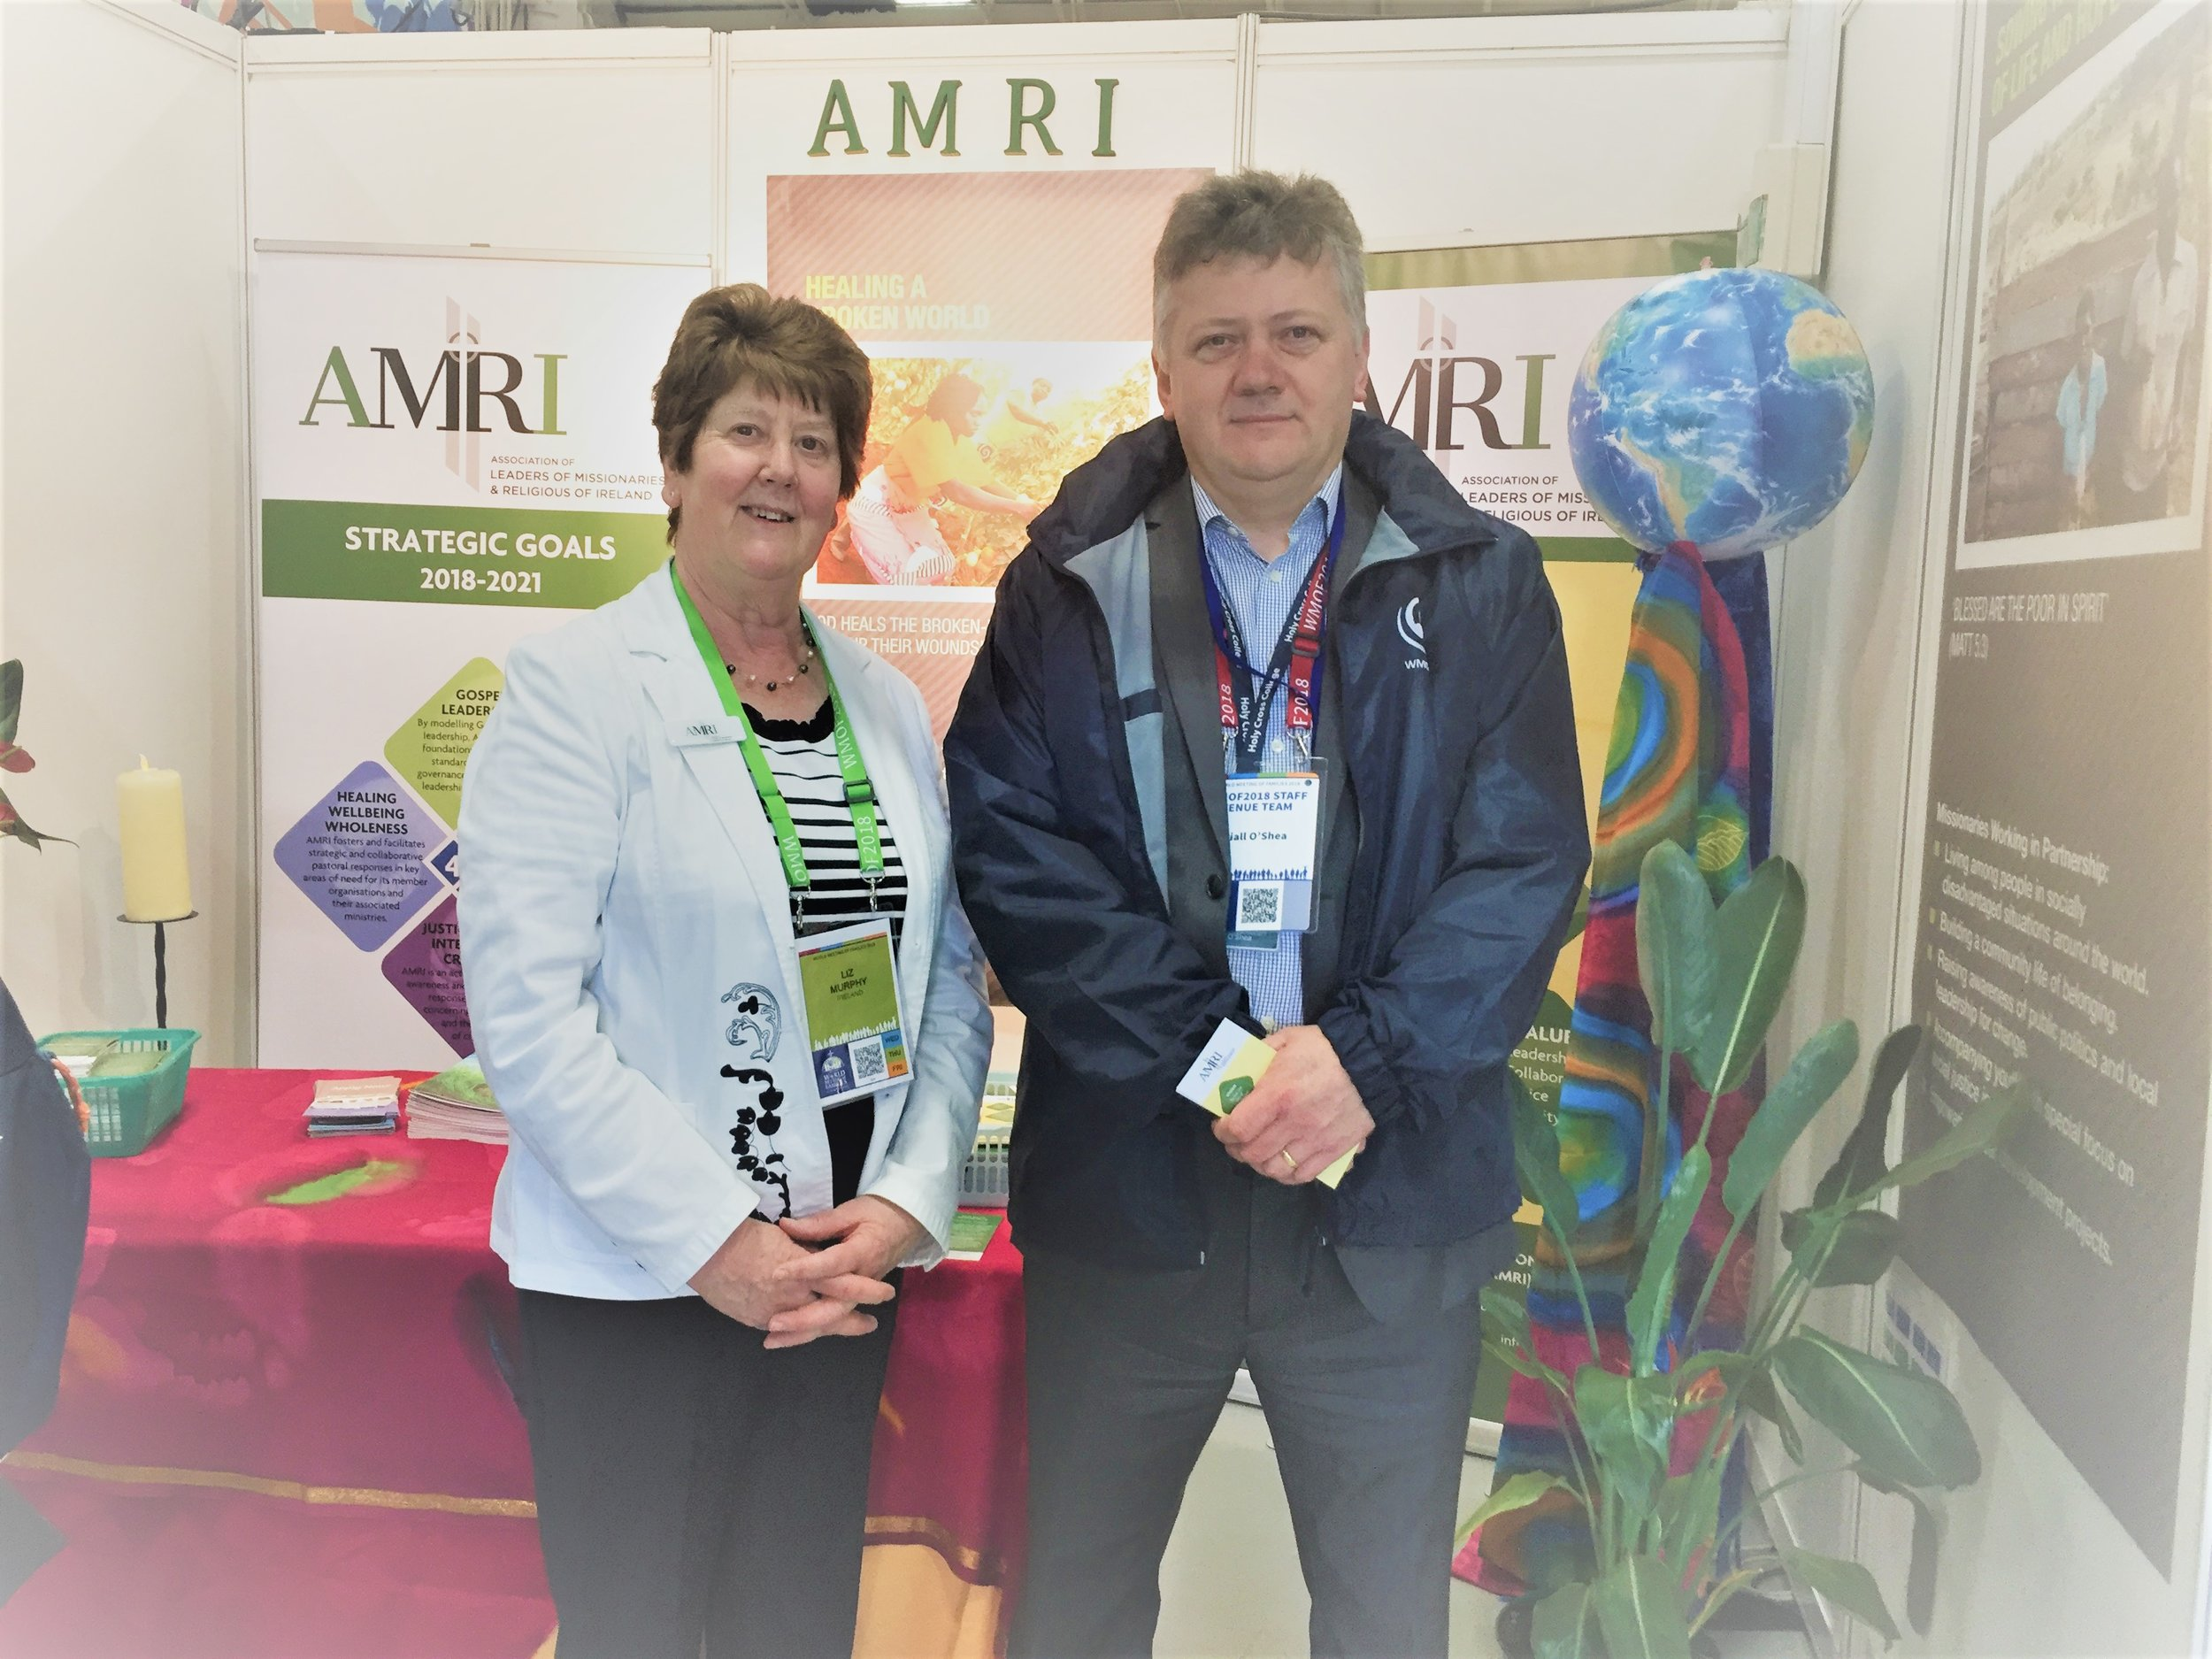 Sr Liz Murphy with Niall O'Shea, seconded by Bank of Ireland to WMOF for 2 years